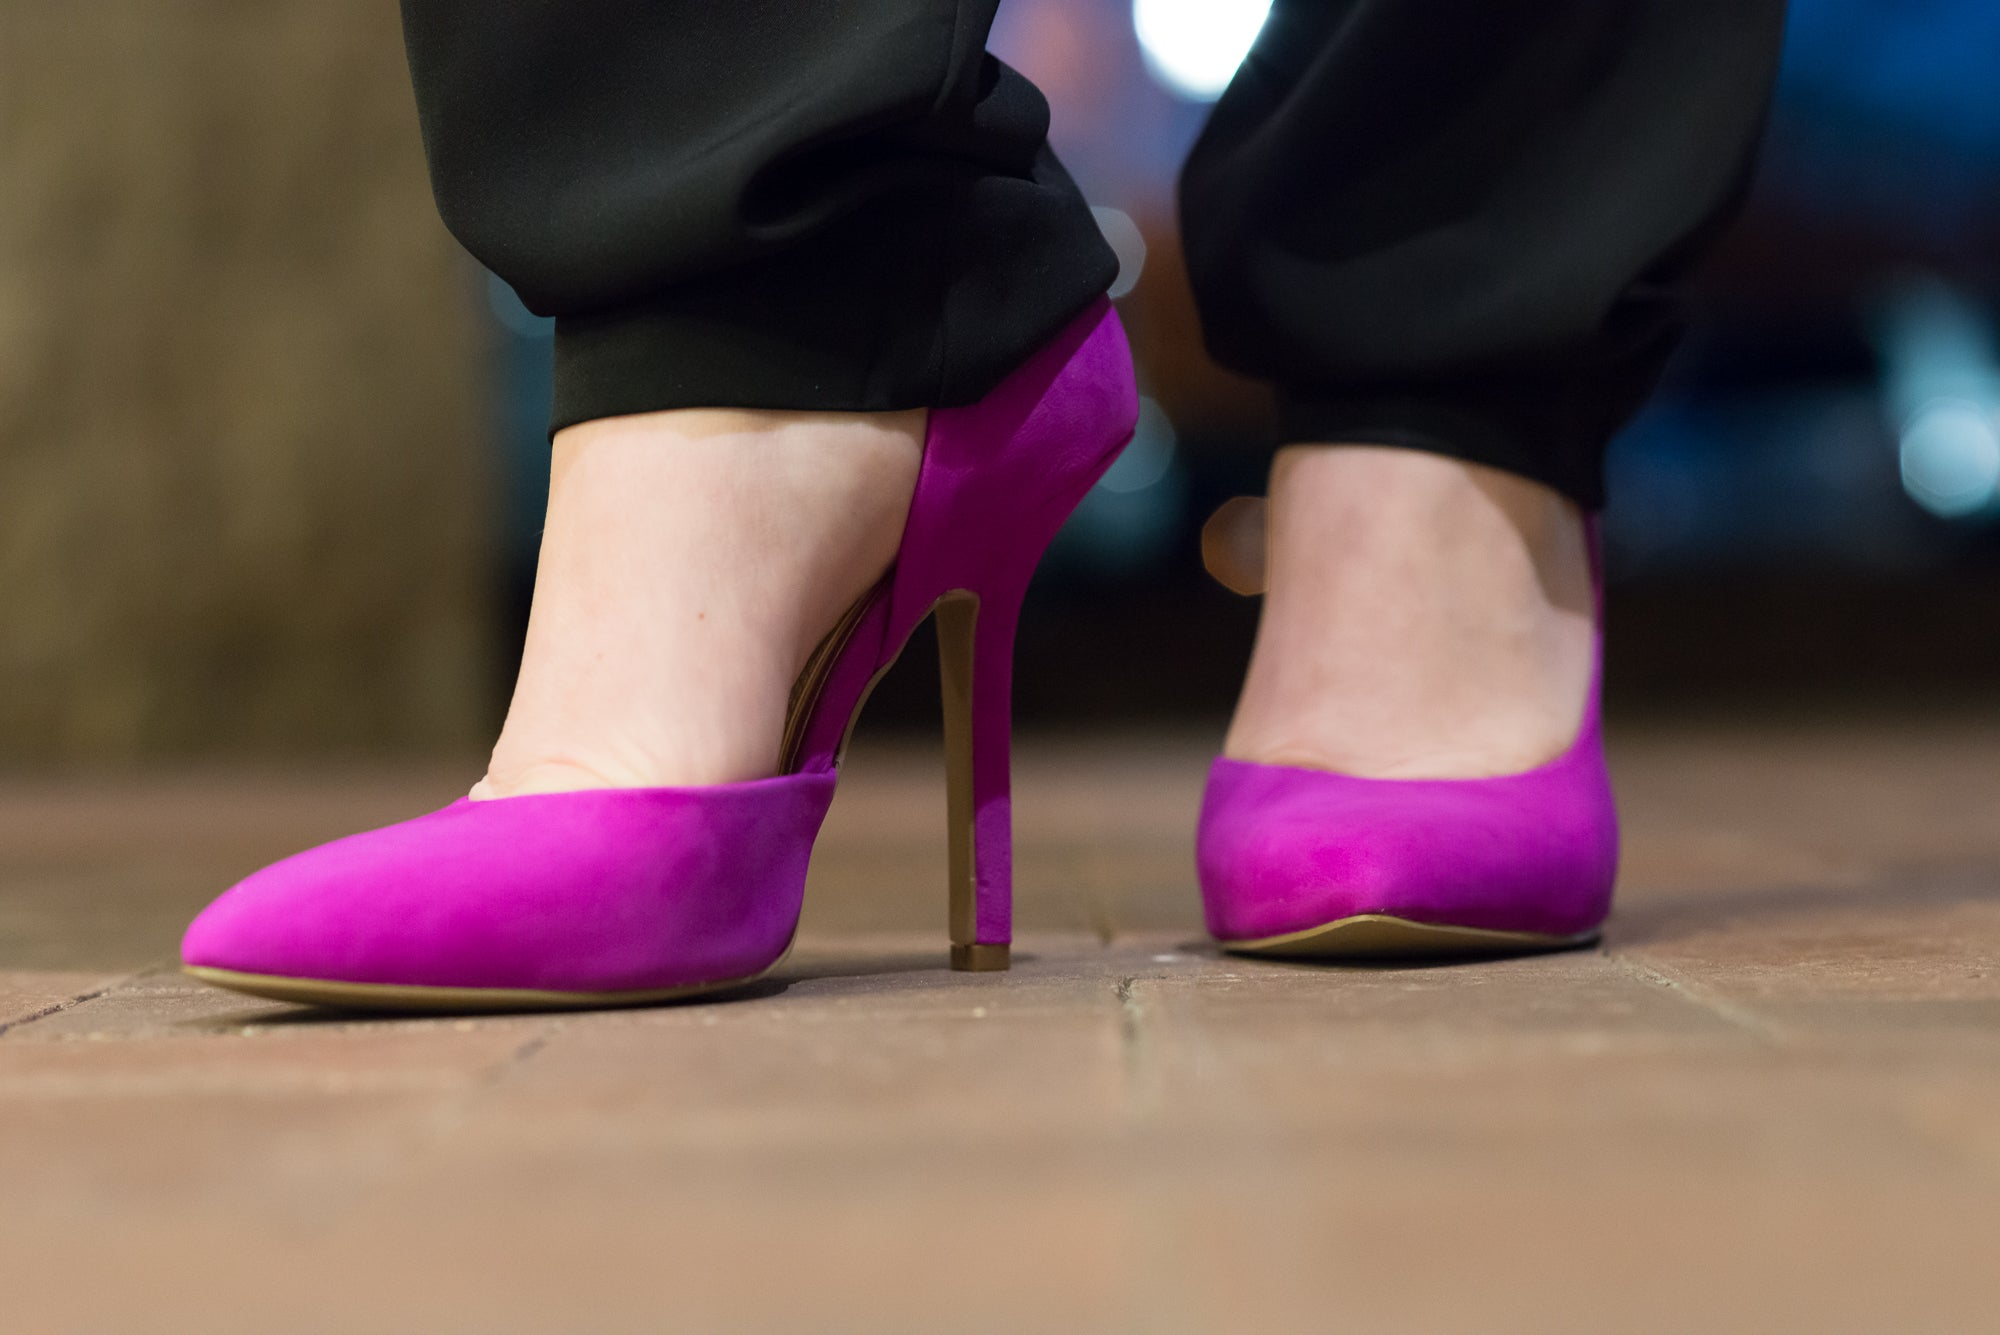 H&M and Pink Pumps (4 of 8)